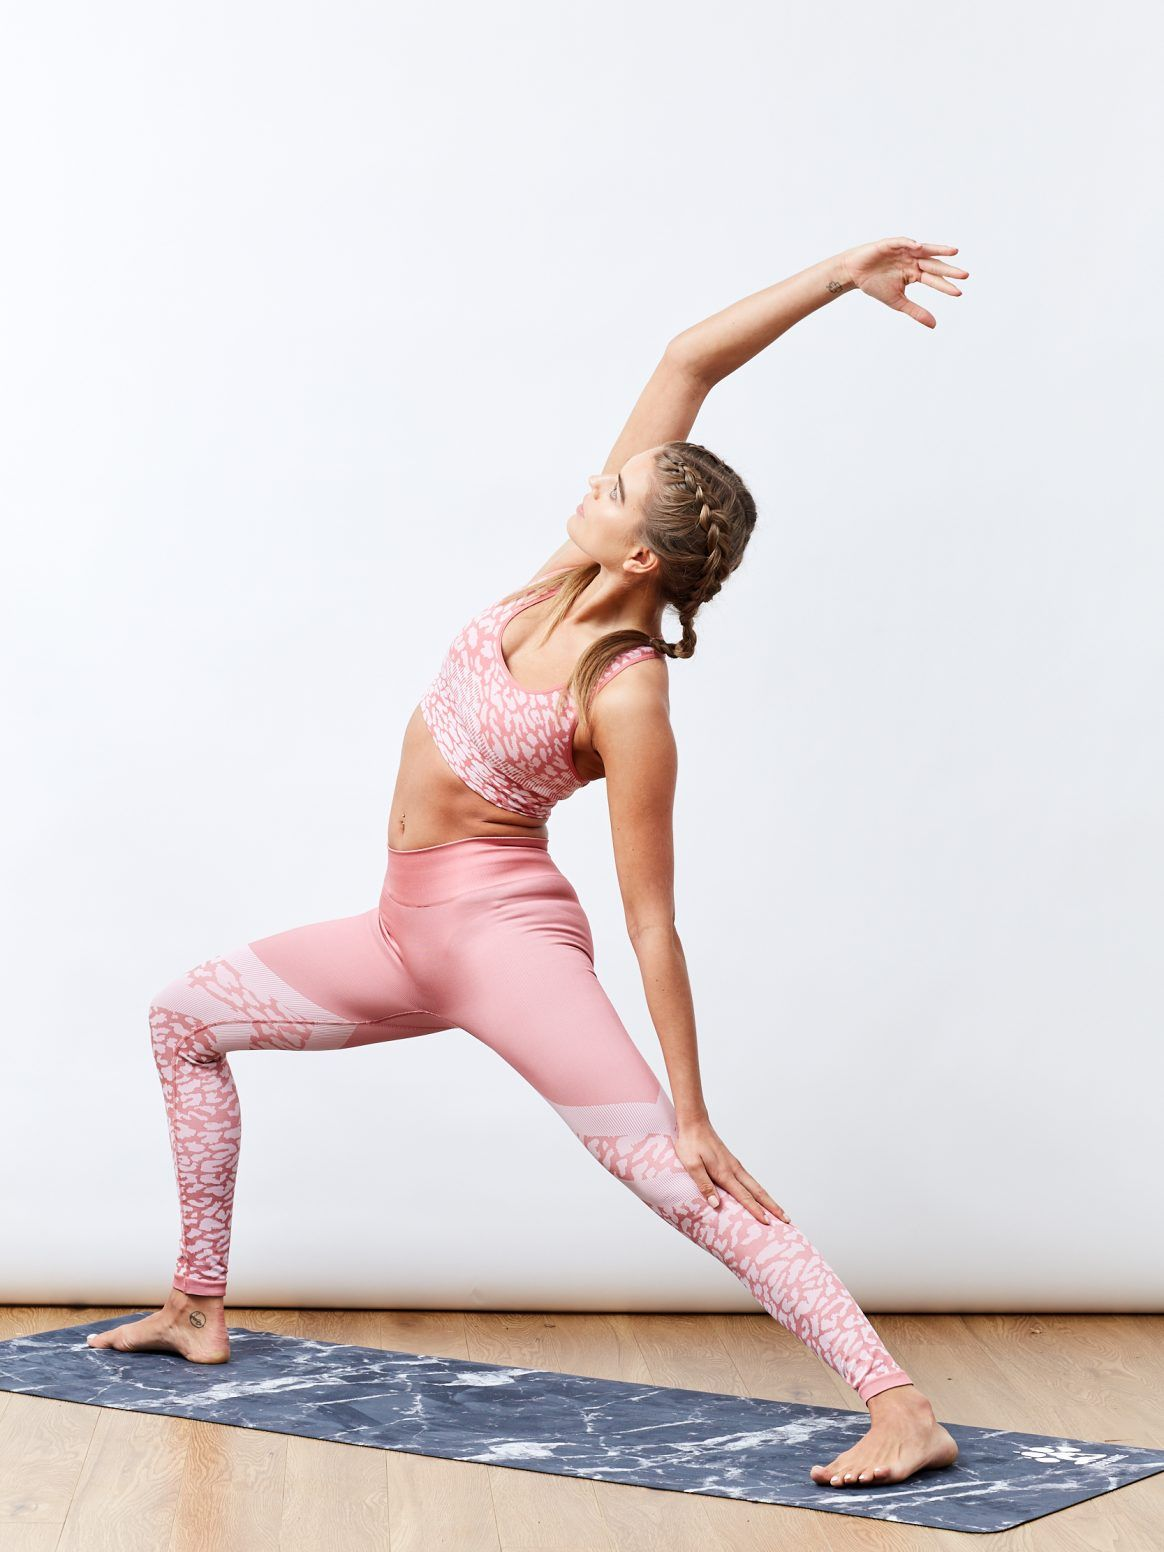 Yogi Bare Marble print machine washable yoga mat and the perfect Varley yoga and seamless kit | Shop the latest activewear arrivals on Fashercise now - free worldwide shipping over £150!